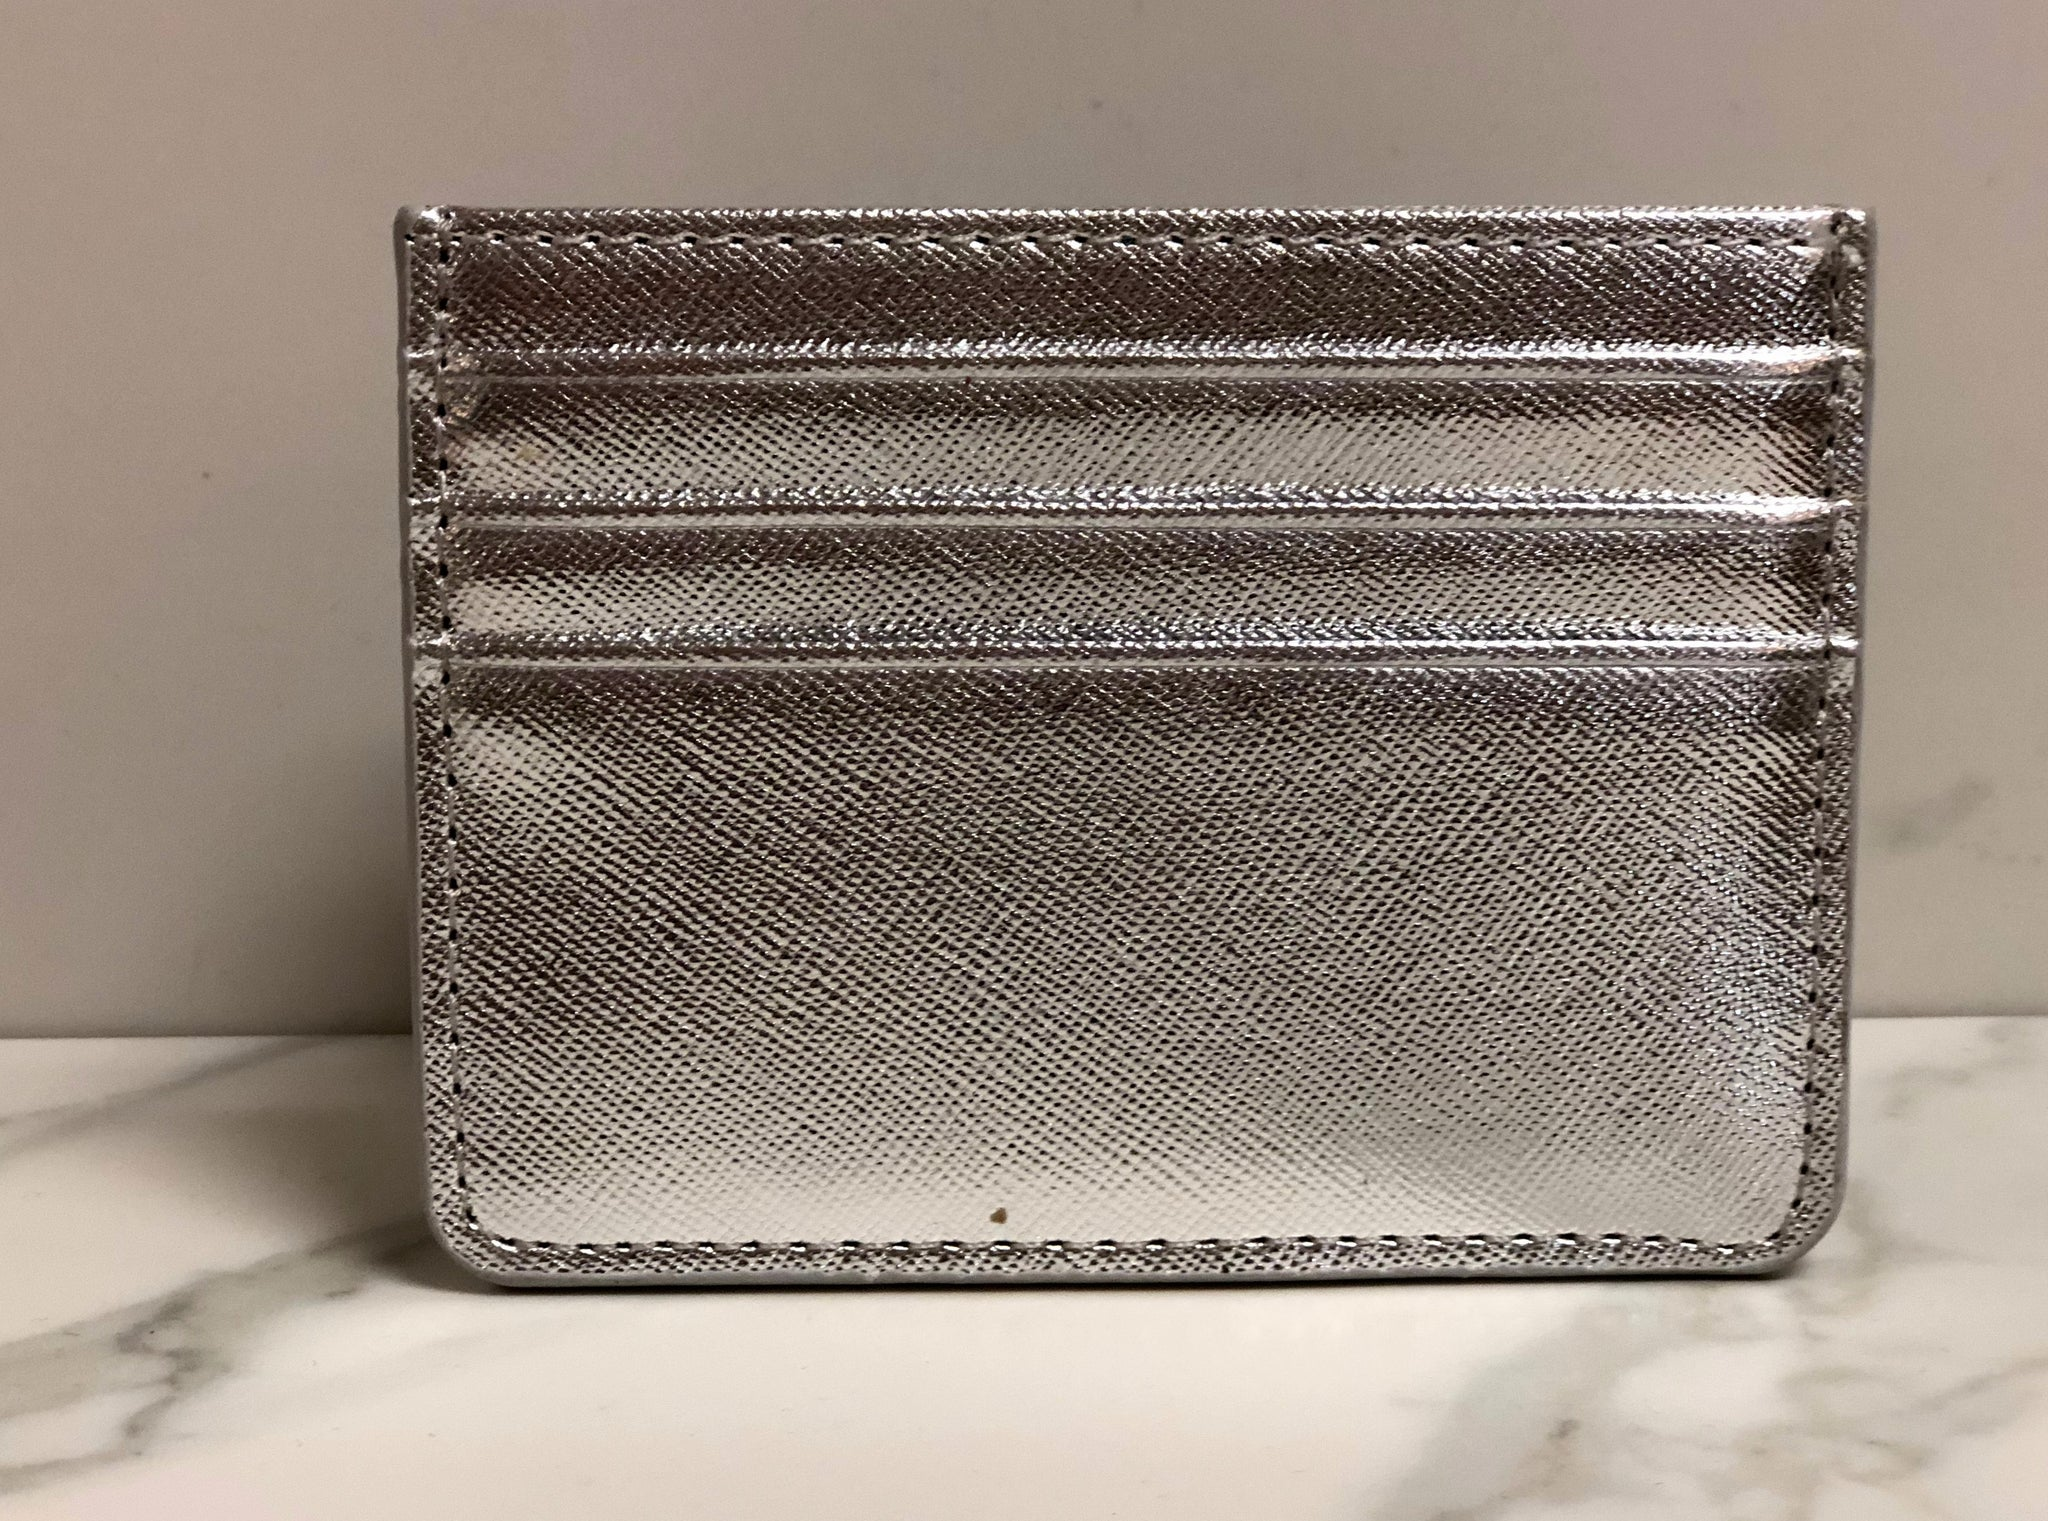 The Becca Wallet